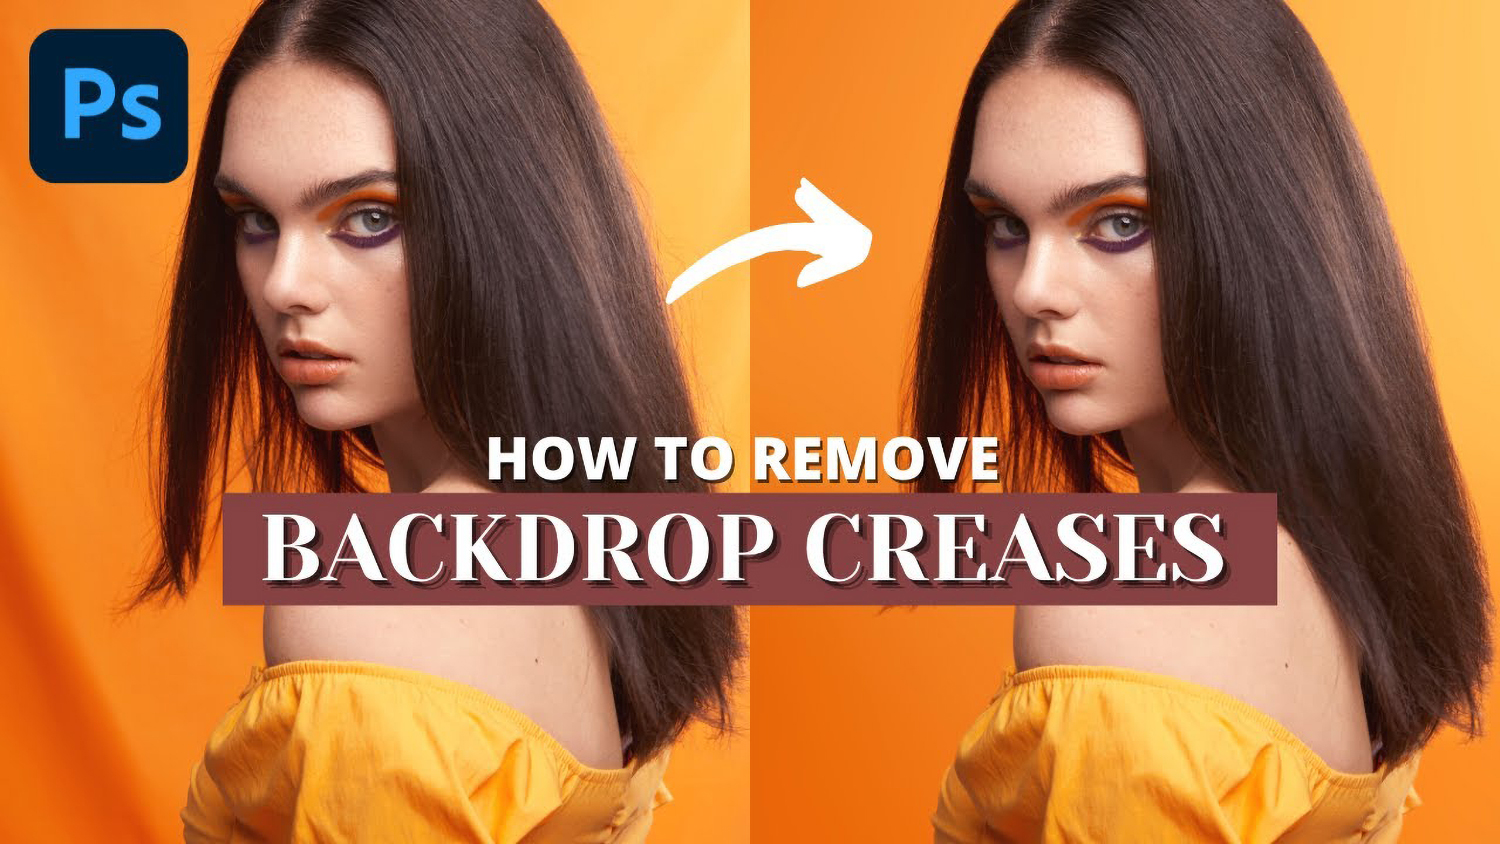 Photo for how to remove backdrop creases